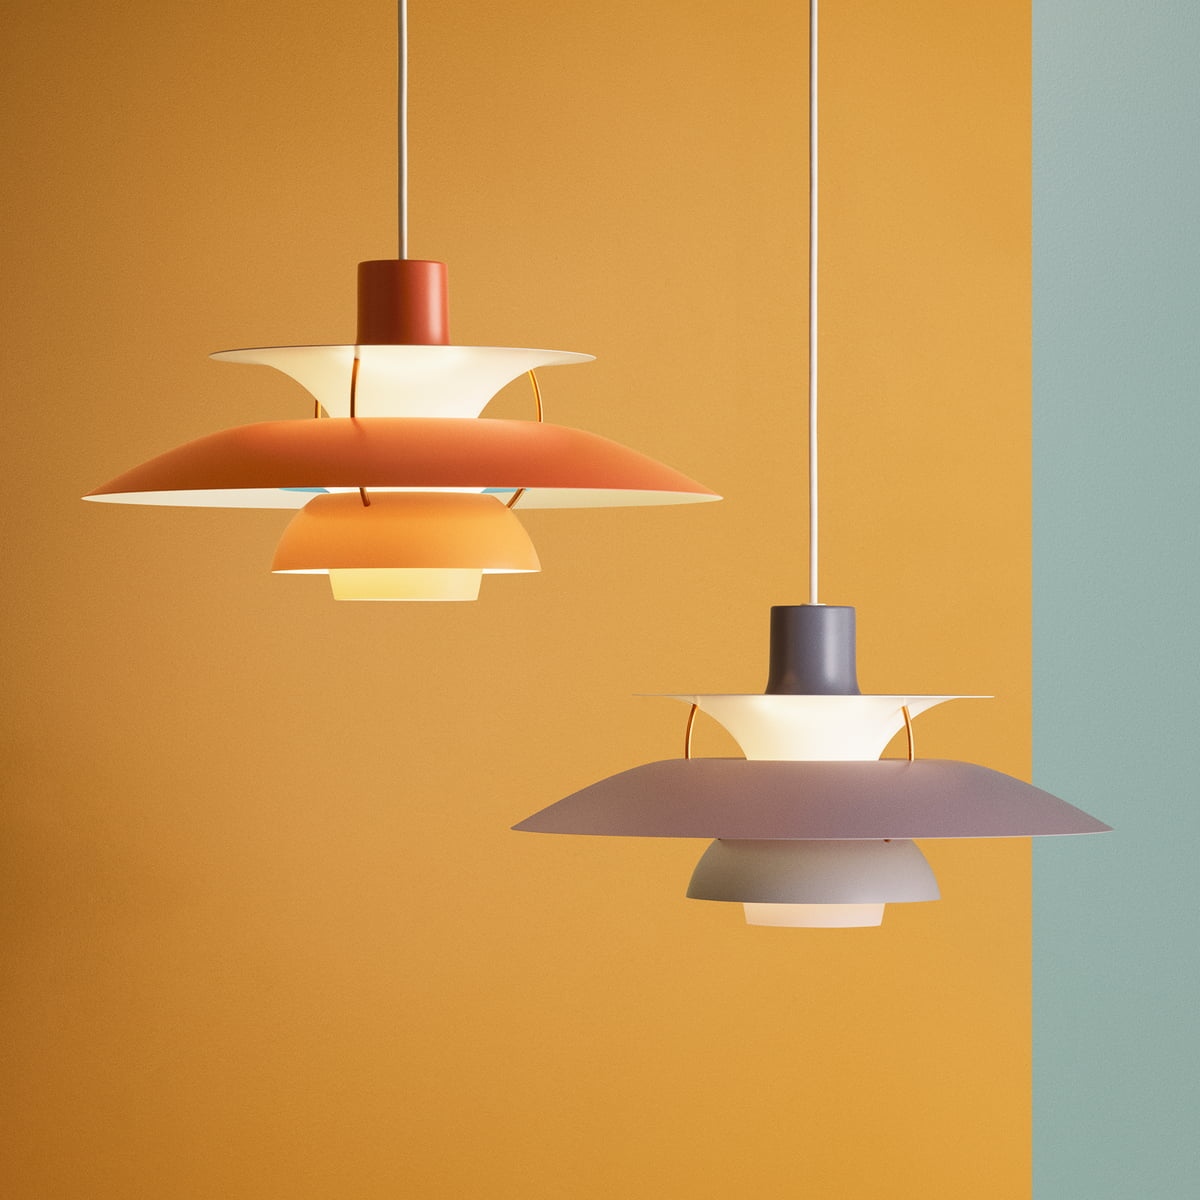 Hanging Lamp Philippines: PH 5 Pendant Light By Louis Poulsen